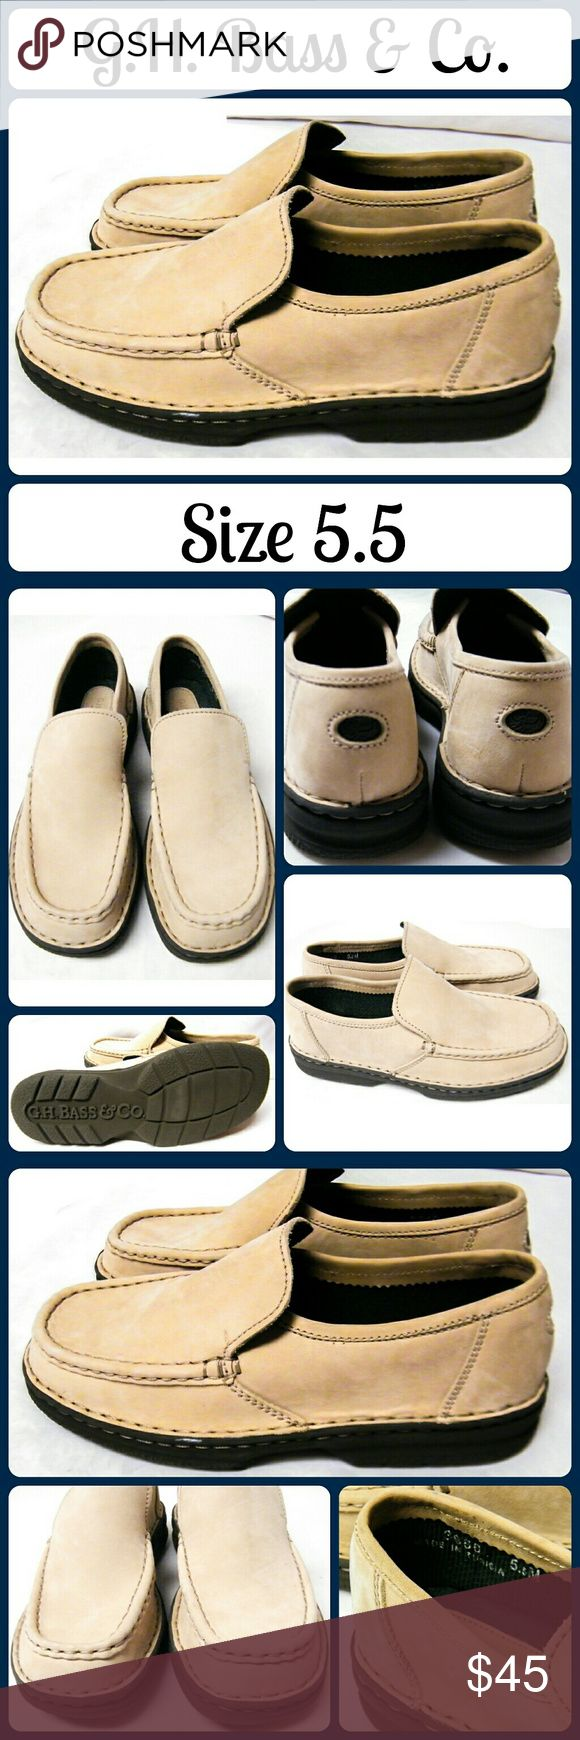 New GH BASS &CO Loafers Slip on Boat/Dock Shoes Never worn! Soft, brushed tan leather. Very sturdy shoes, no stains, tears, or marks.... From a smoke-free, dog friendly home, No trades!! G.H. Bass & Co. Shoes Flats & Loafers